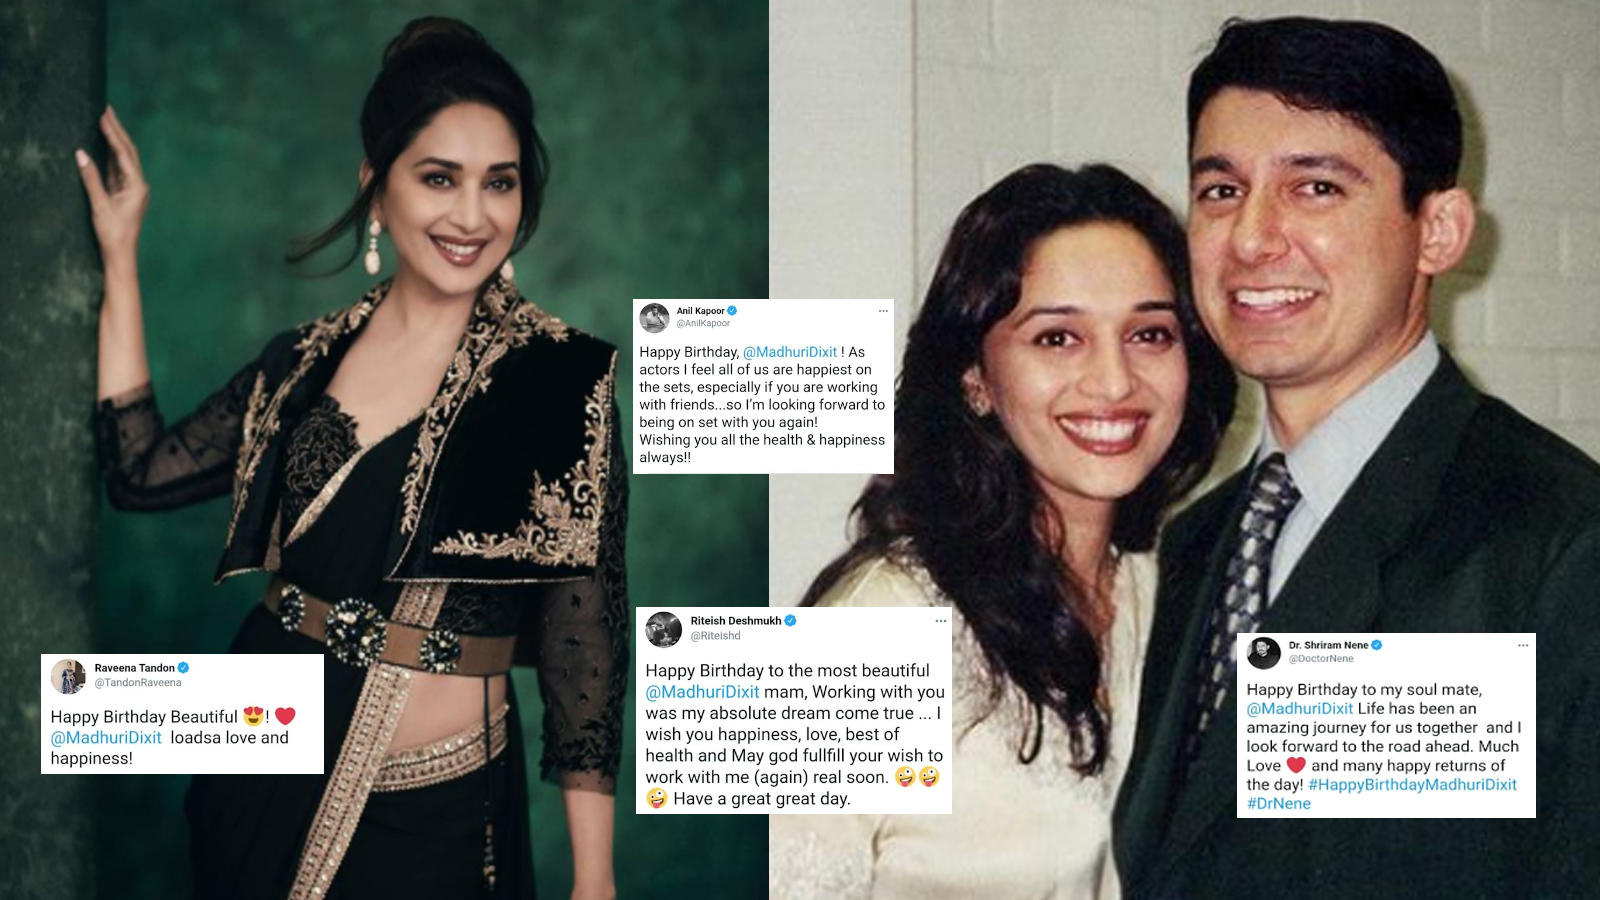 happy-birthday-madhuri-dixit-husband-dr-shriram-nene-pens-the-sweetest-love-note-for-his-soulmate-anil-kapoor-raveena-tandon-send-warm-wishes